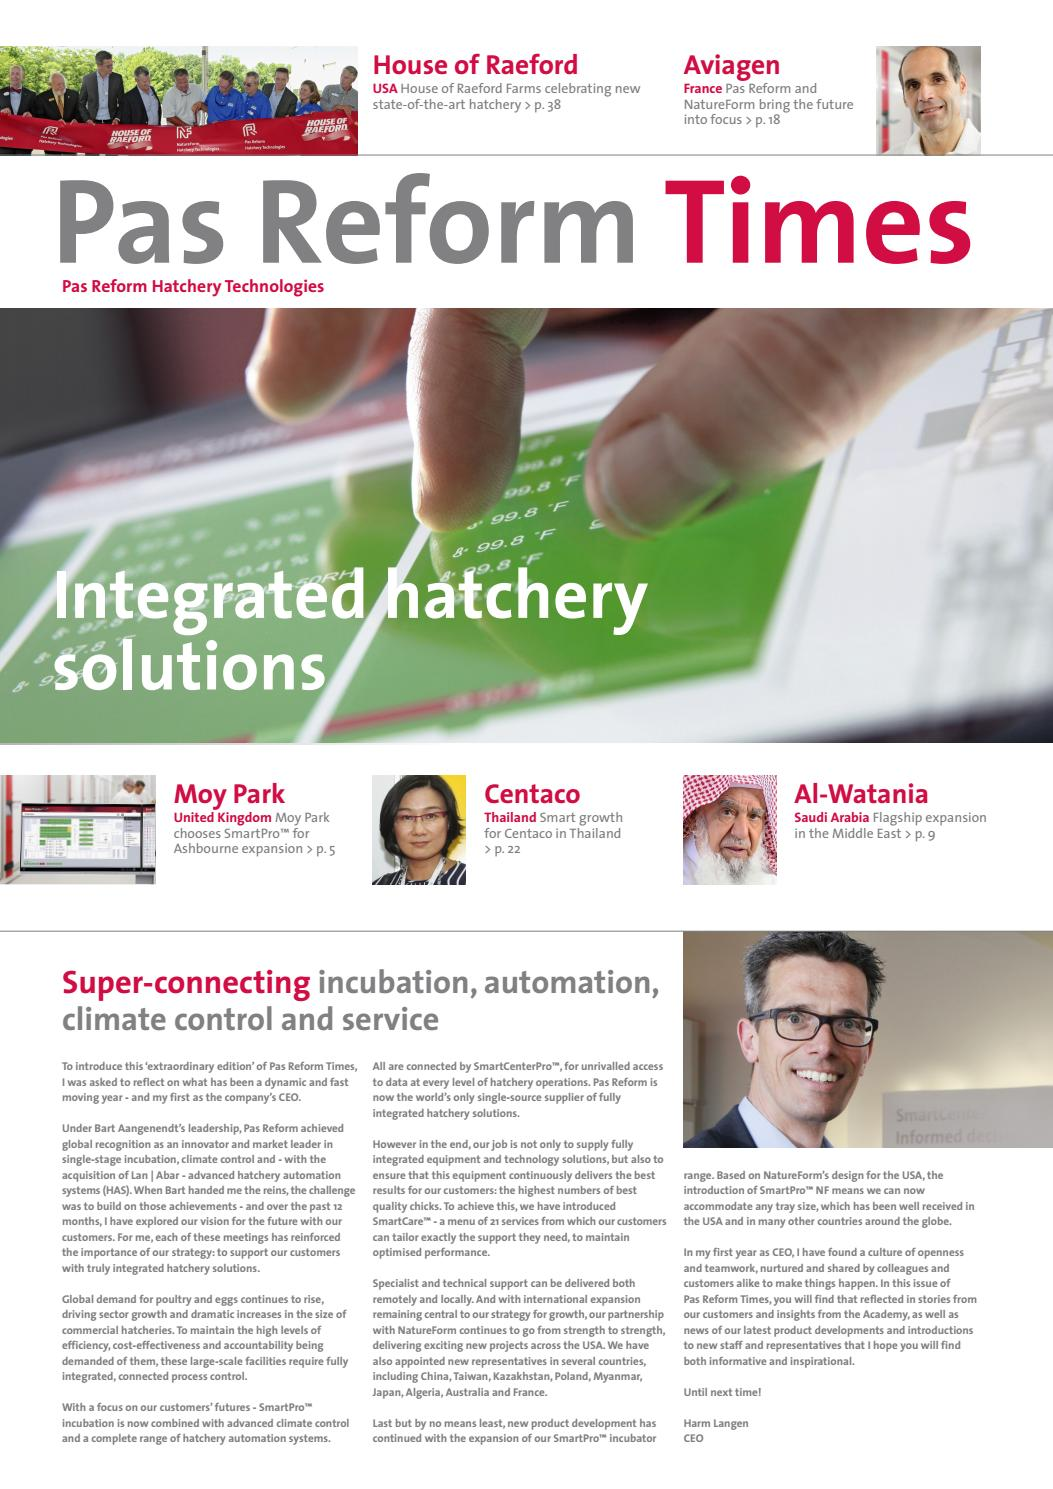 Pas Reform Times 2016 By Hatchery Technologies